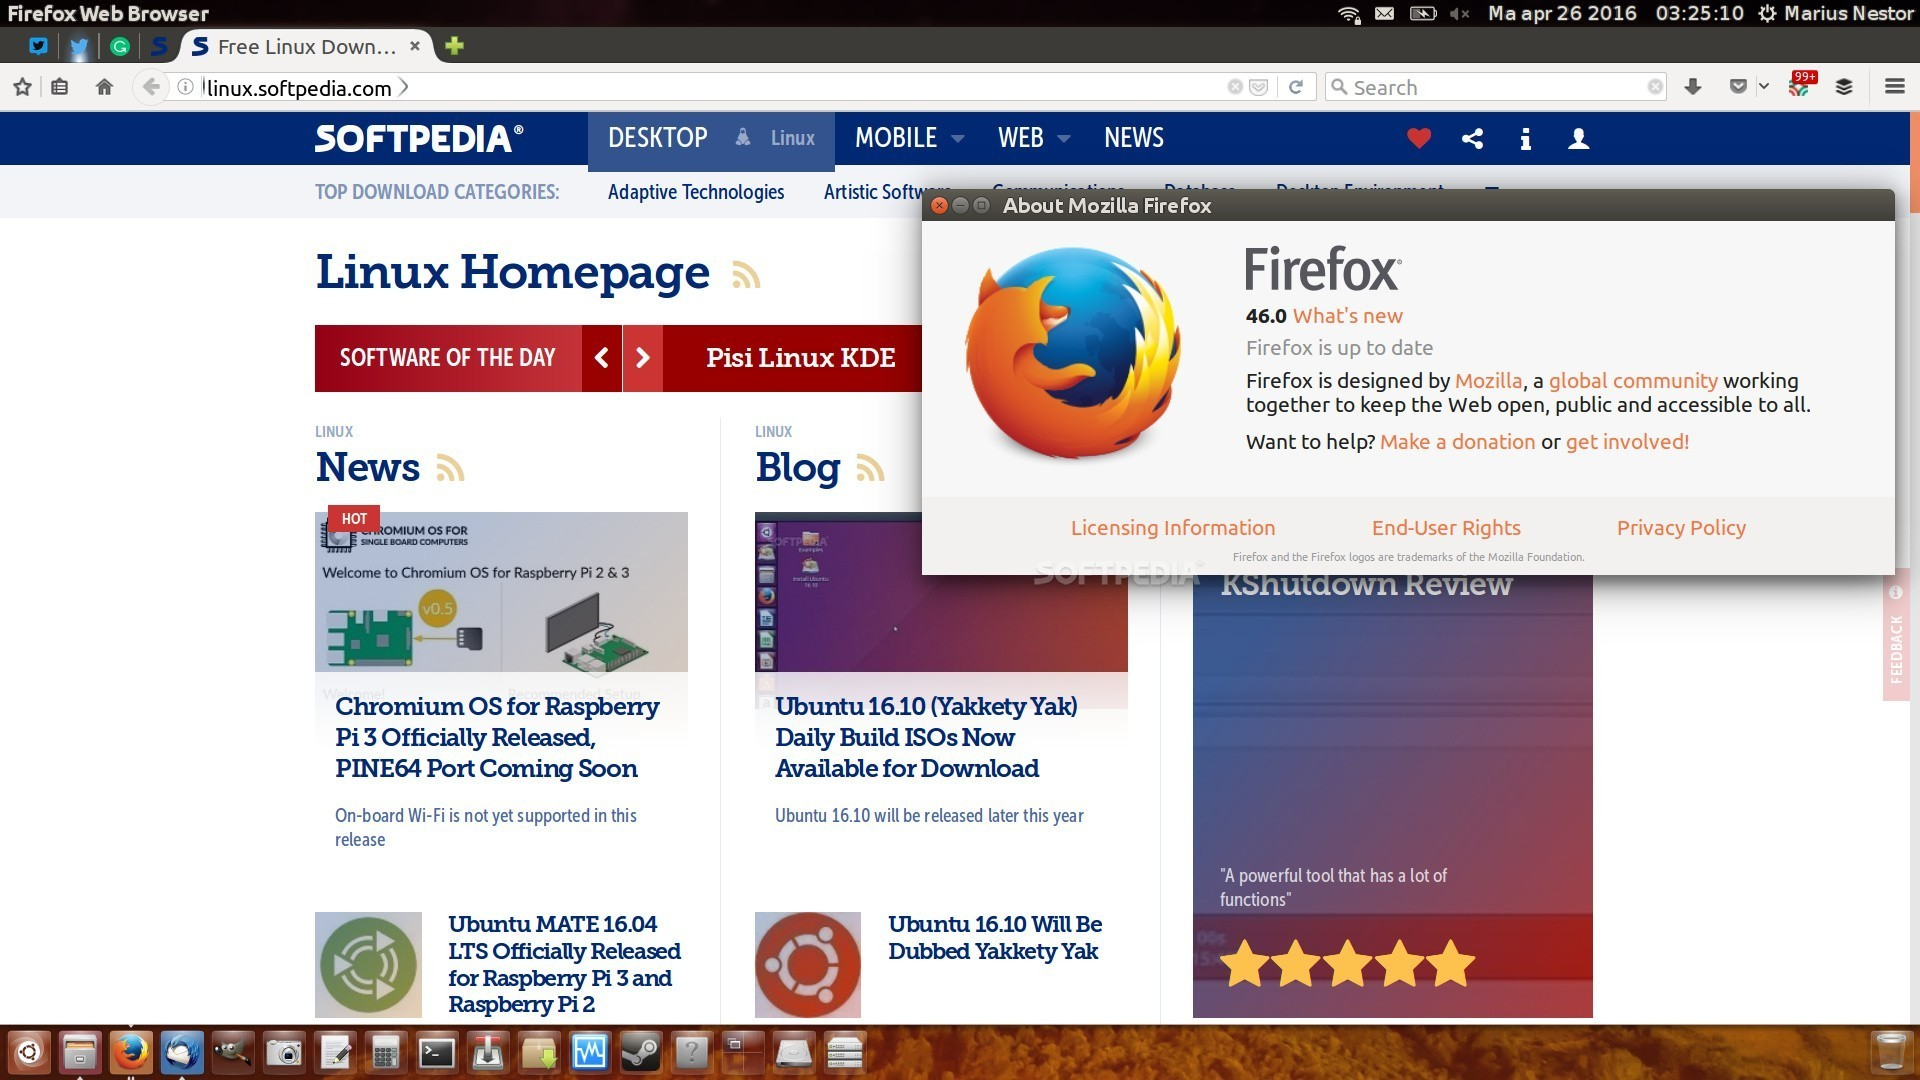 Mozilla Releases Firefox 46.0.1 to Fix Bugs and Limit Sync Registration Updates